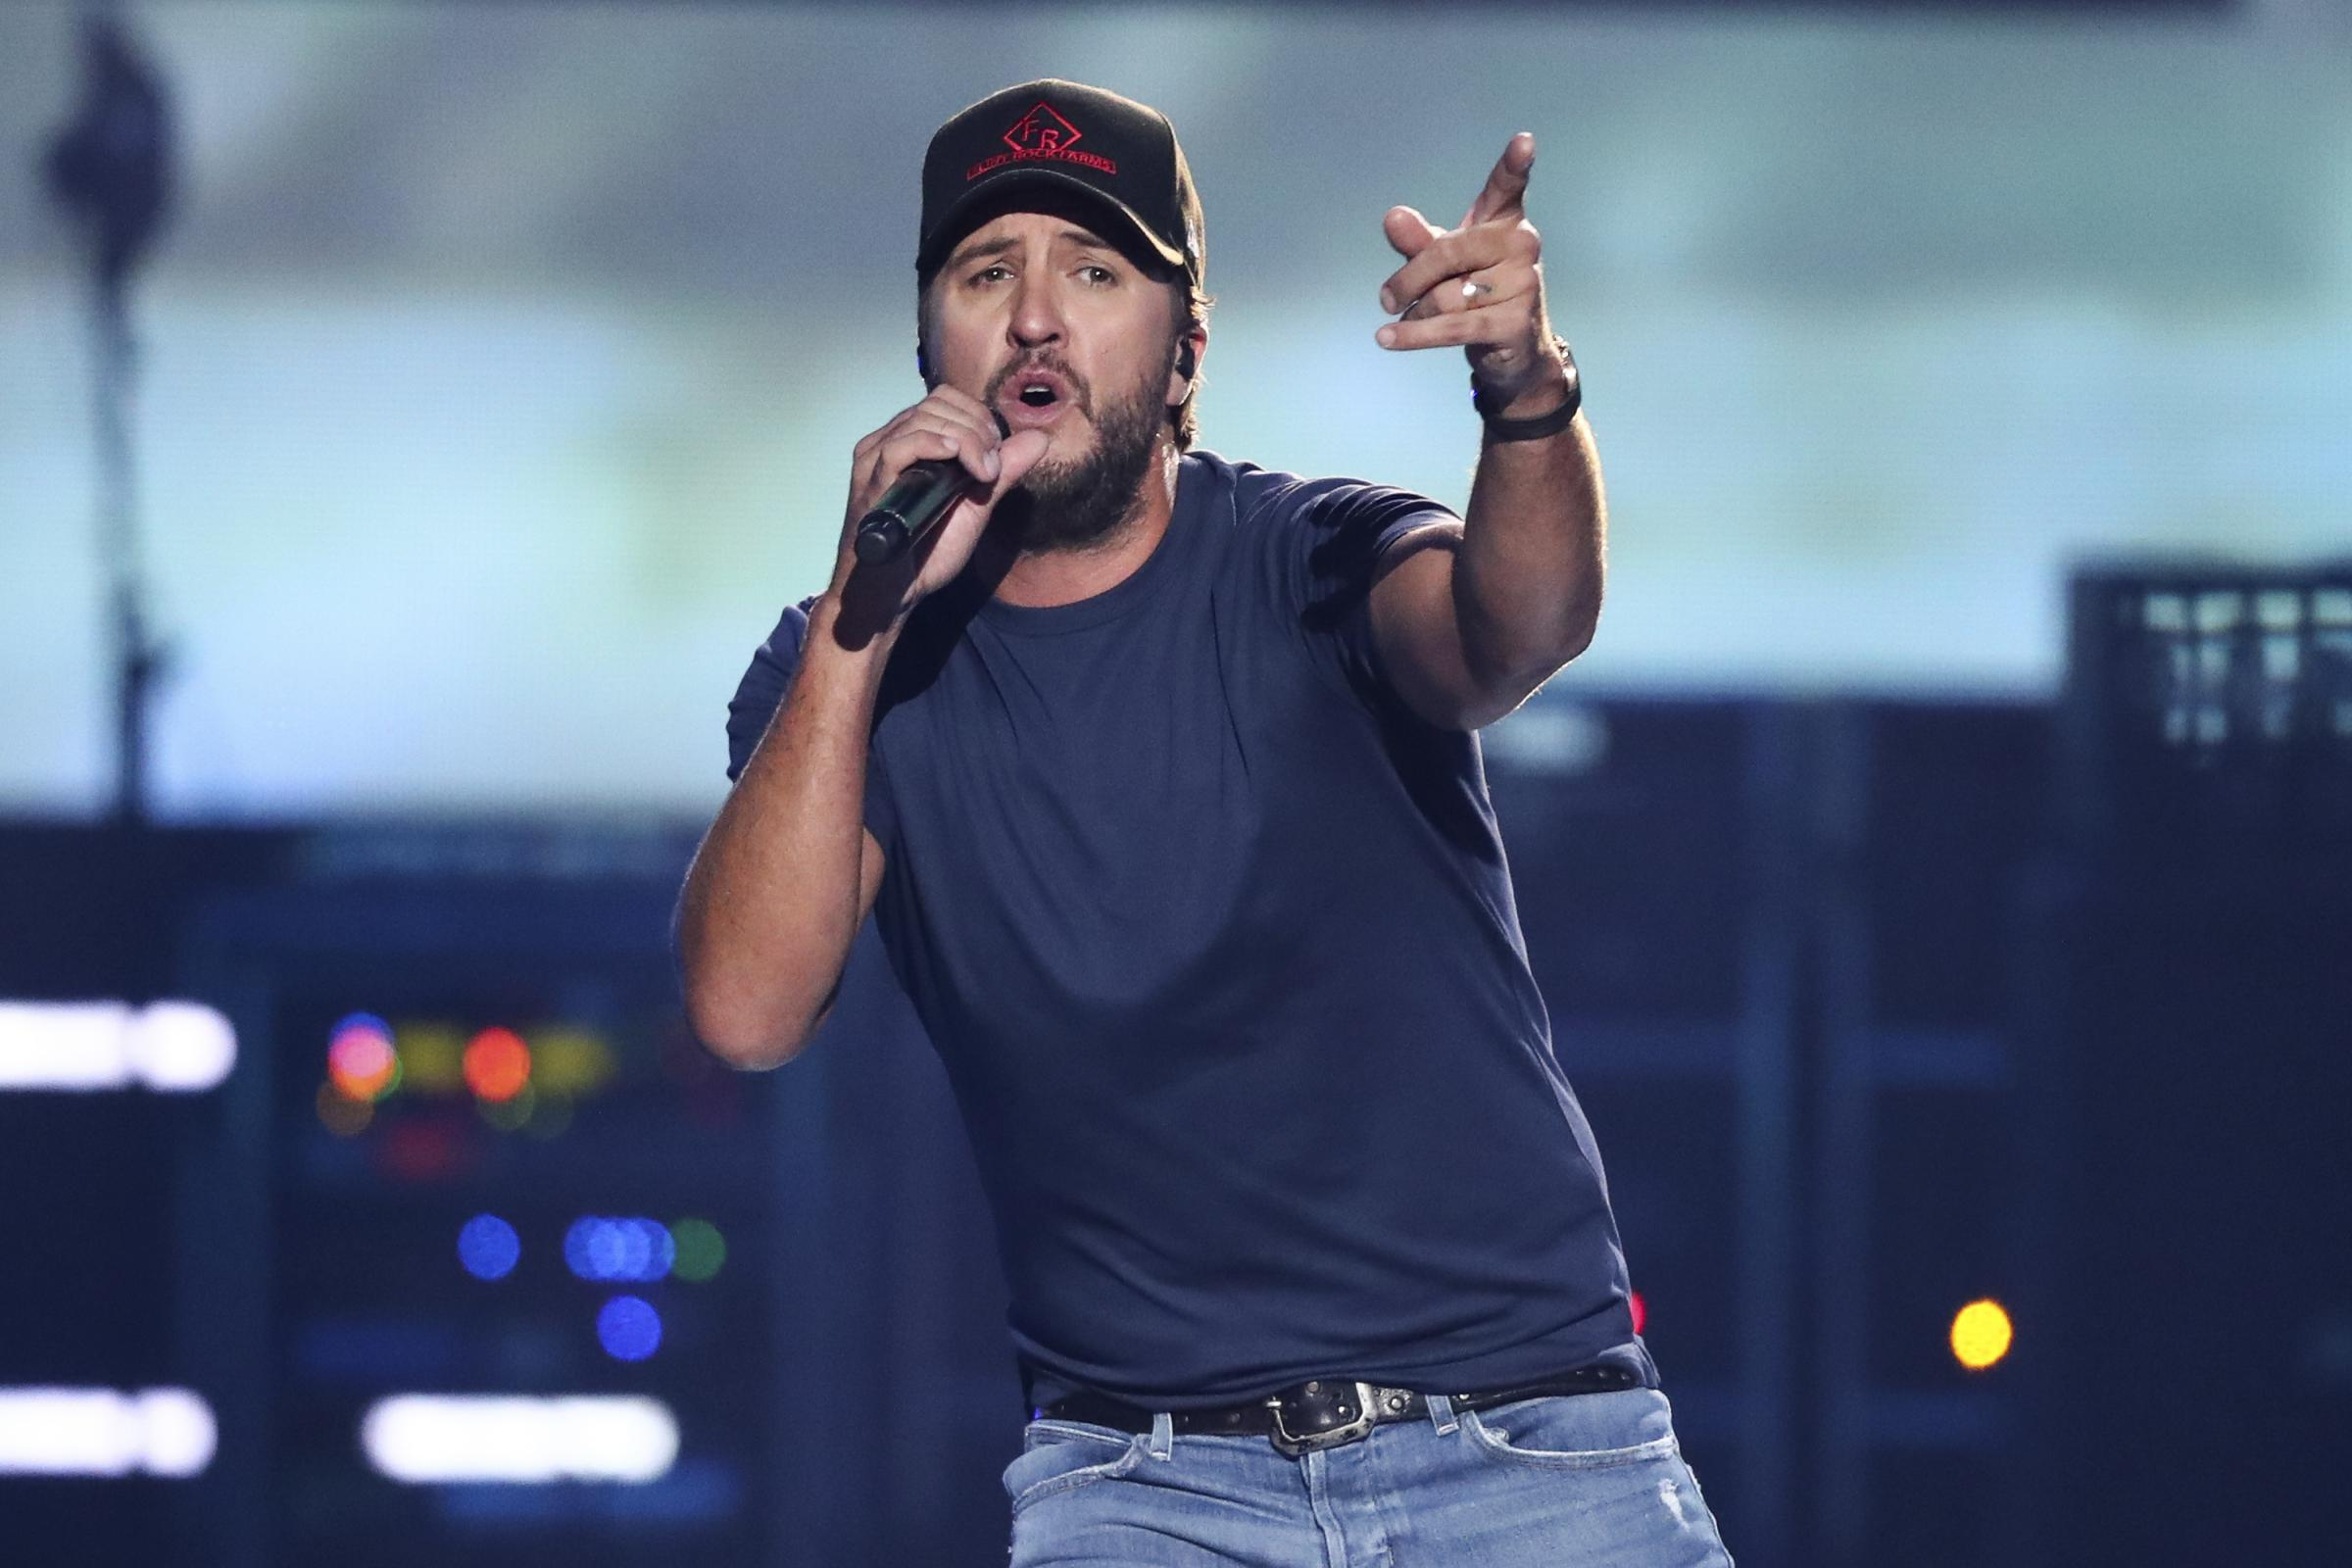 Country star luke bryan creates isu agriculture scholarship wglt luke bryan performs at the 2018 iheartradio music festival day 2 held at t mobile arena on saturday sept 22 2018 in las vegas m4hsunfo